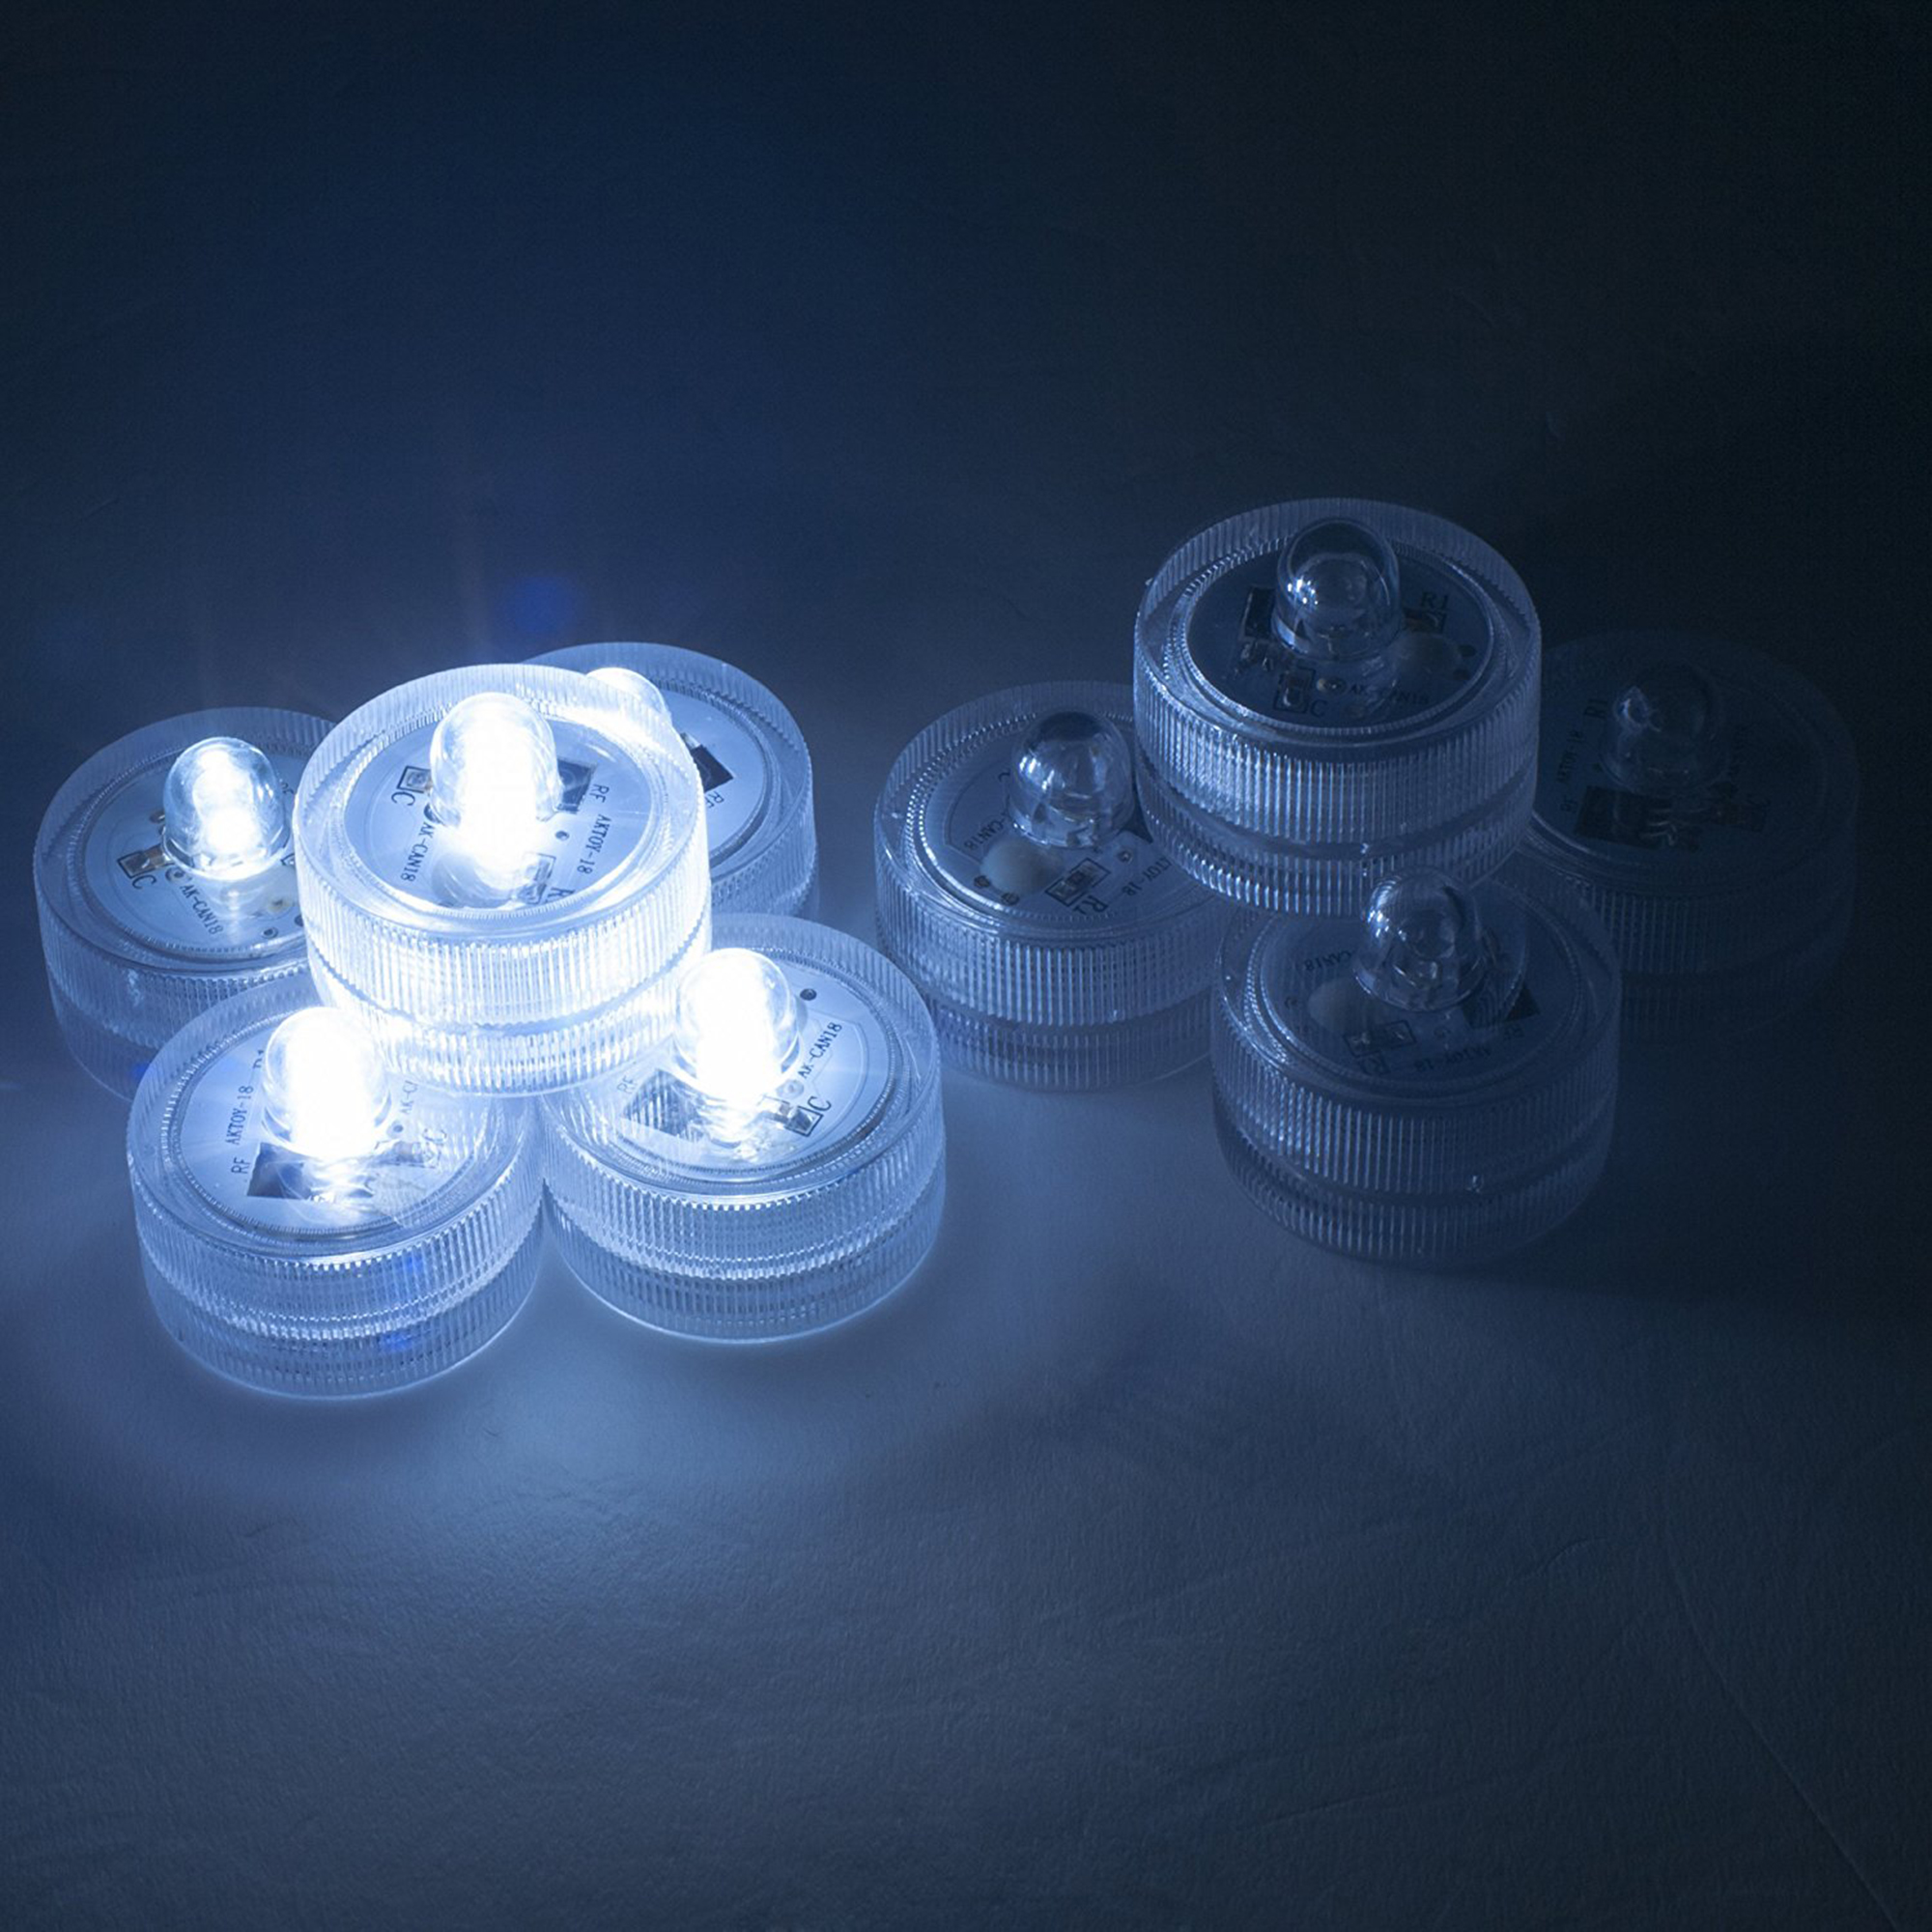 Weanas 36x White LED Submersible Tea Light Tealight Candl...